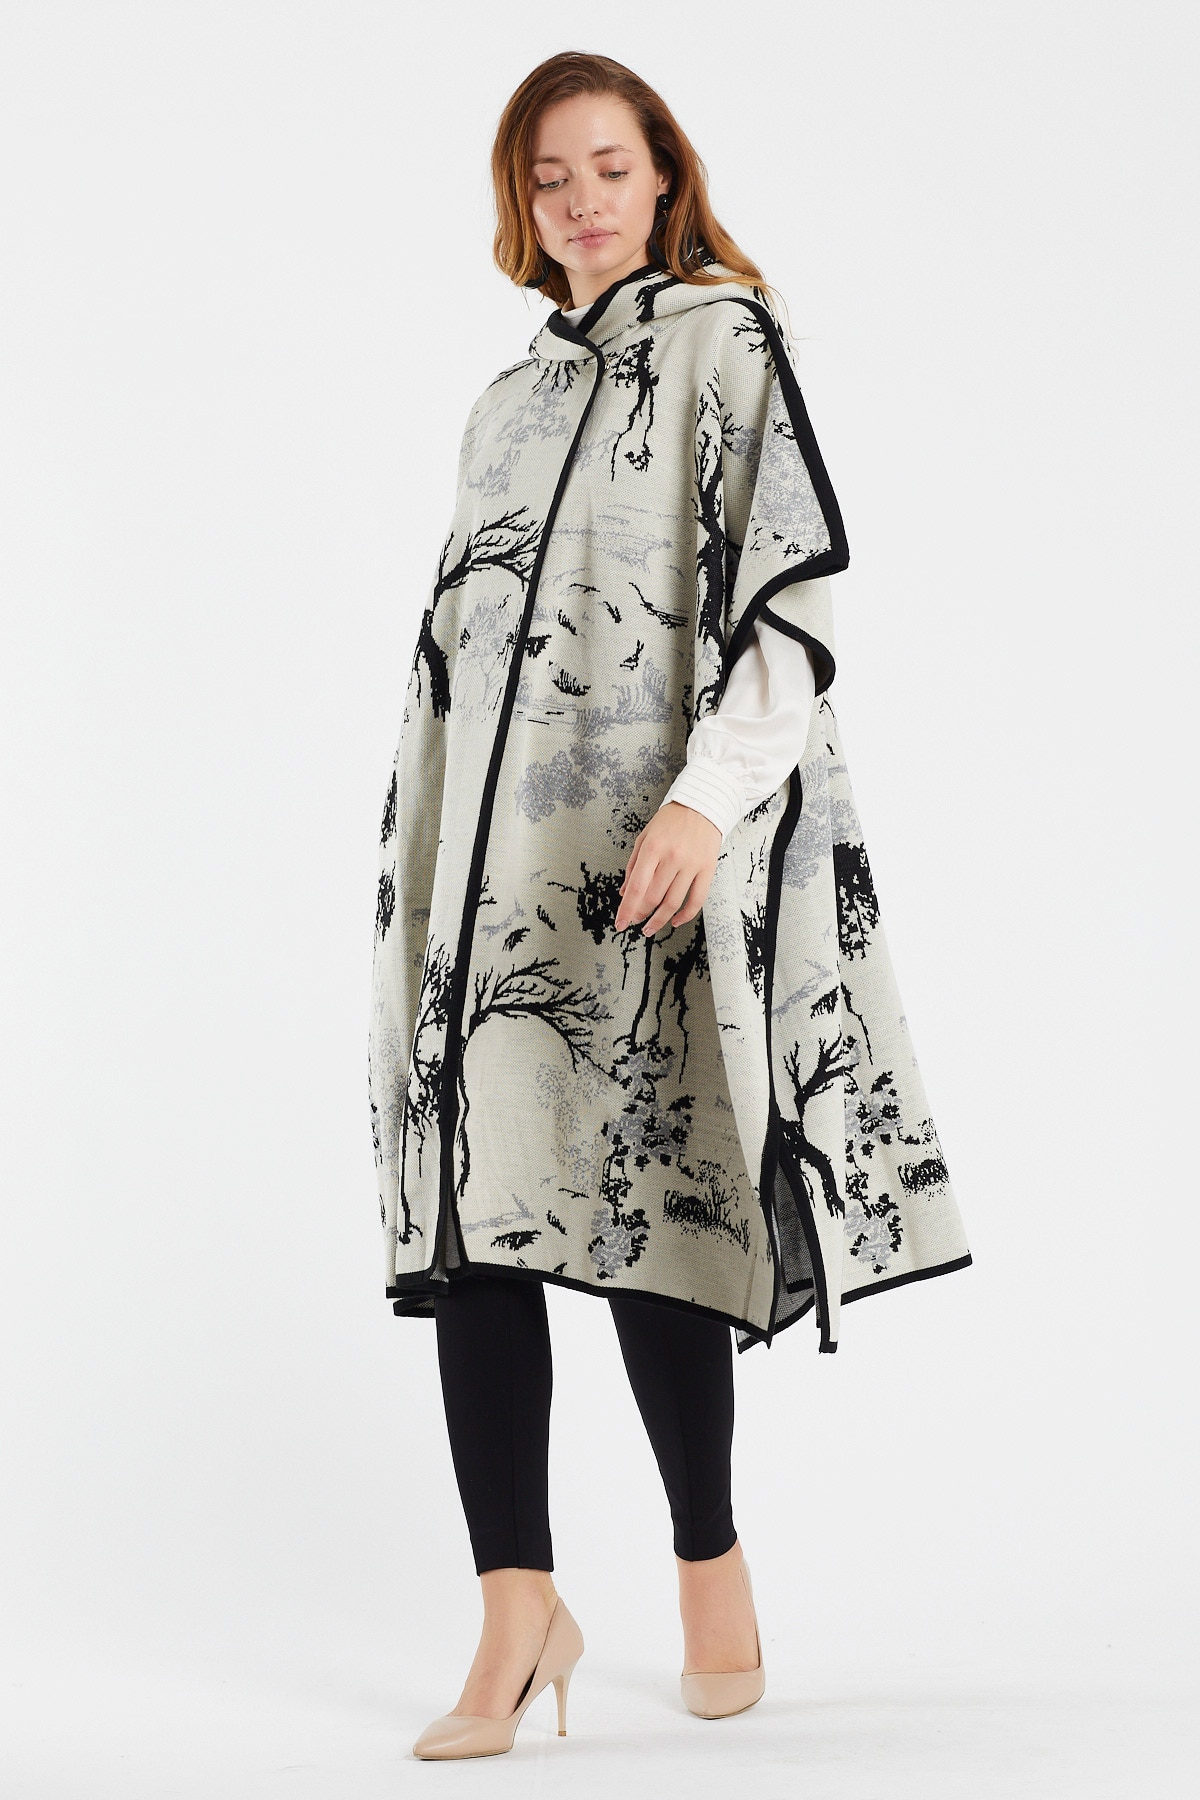 Women's  dress BTS  poncho ,  traf top shawl and  wrap cape for women - oversized long hoodie  forWinter Fall enlarge